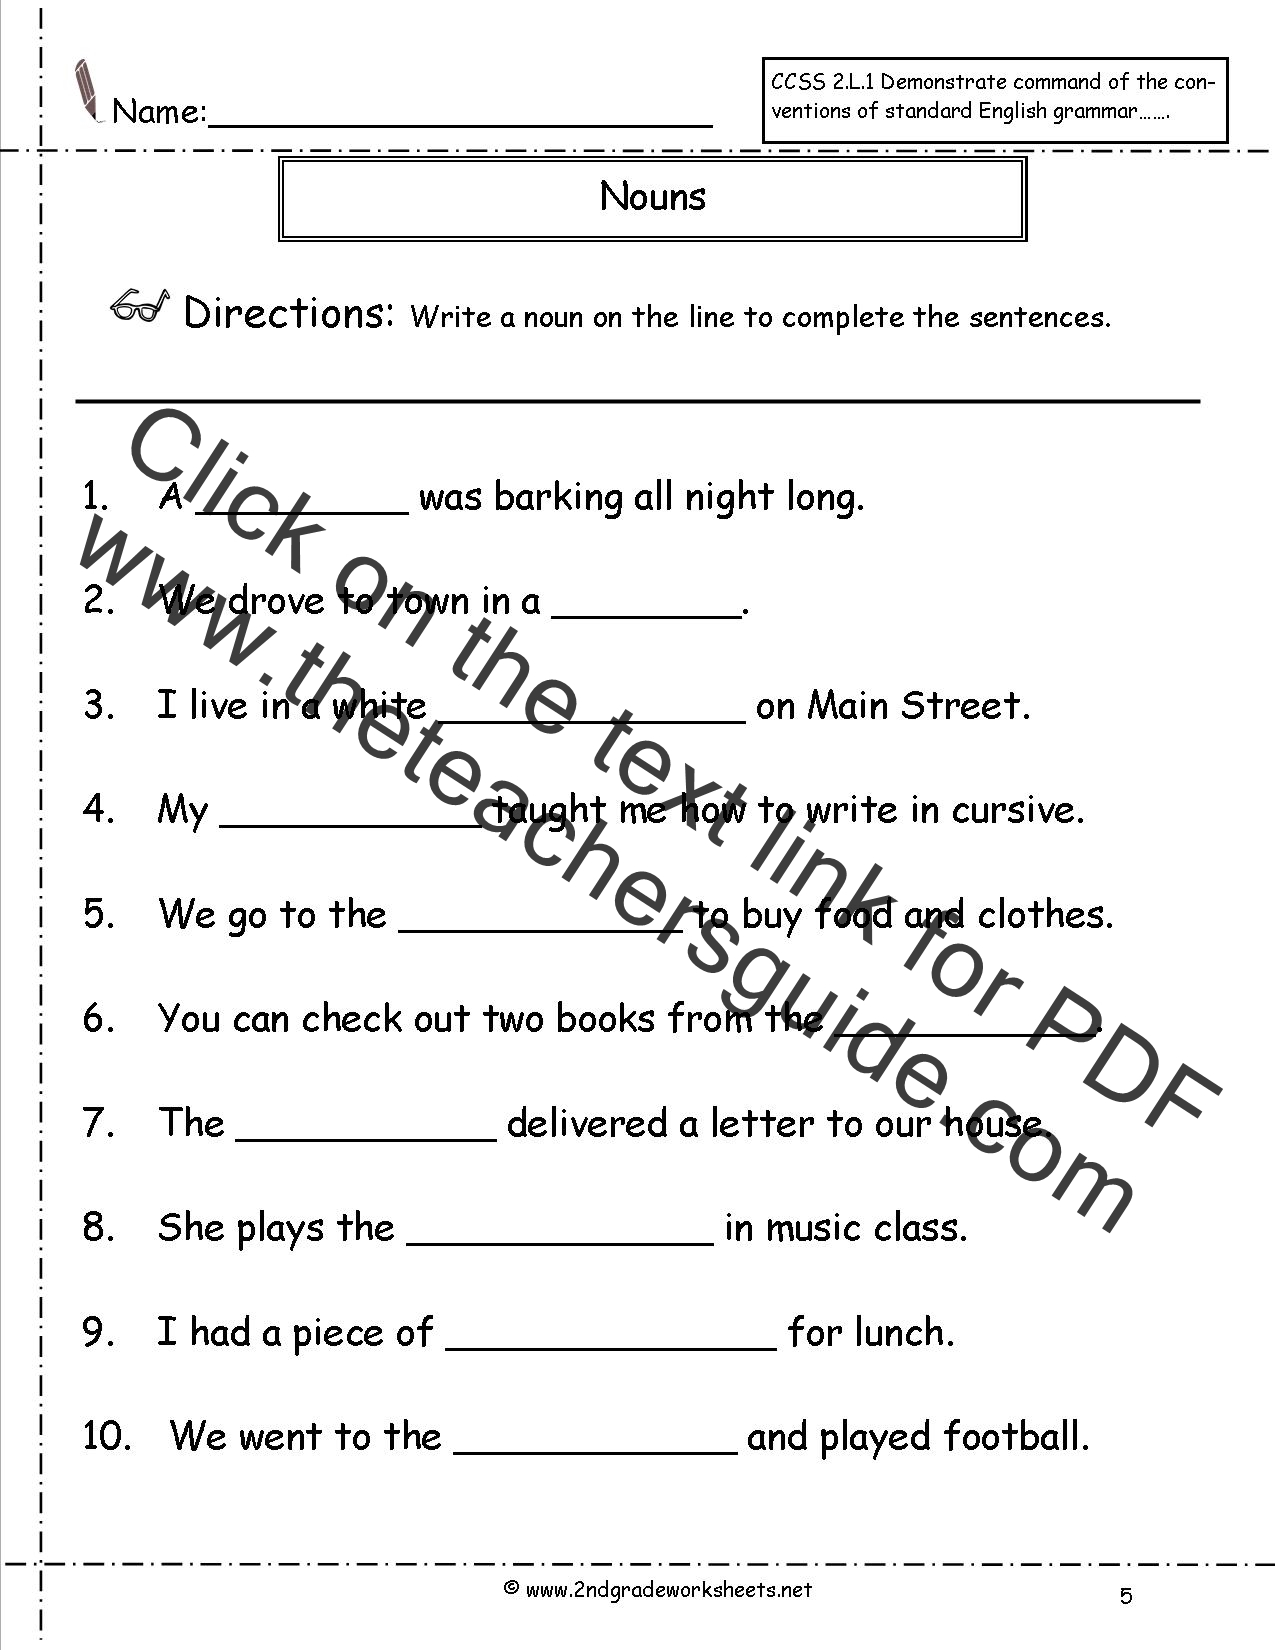 Printables Grammar Worksheets For 2nd Grade nouns worksheets and printouts worksheet